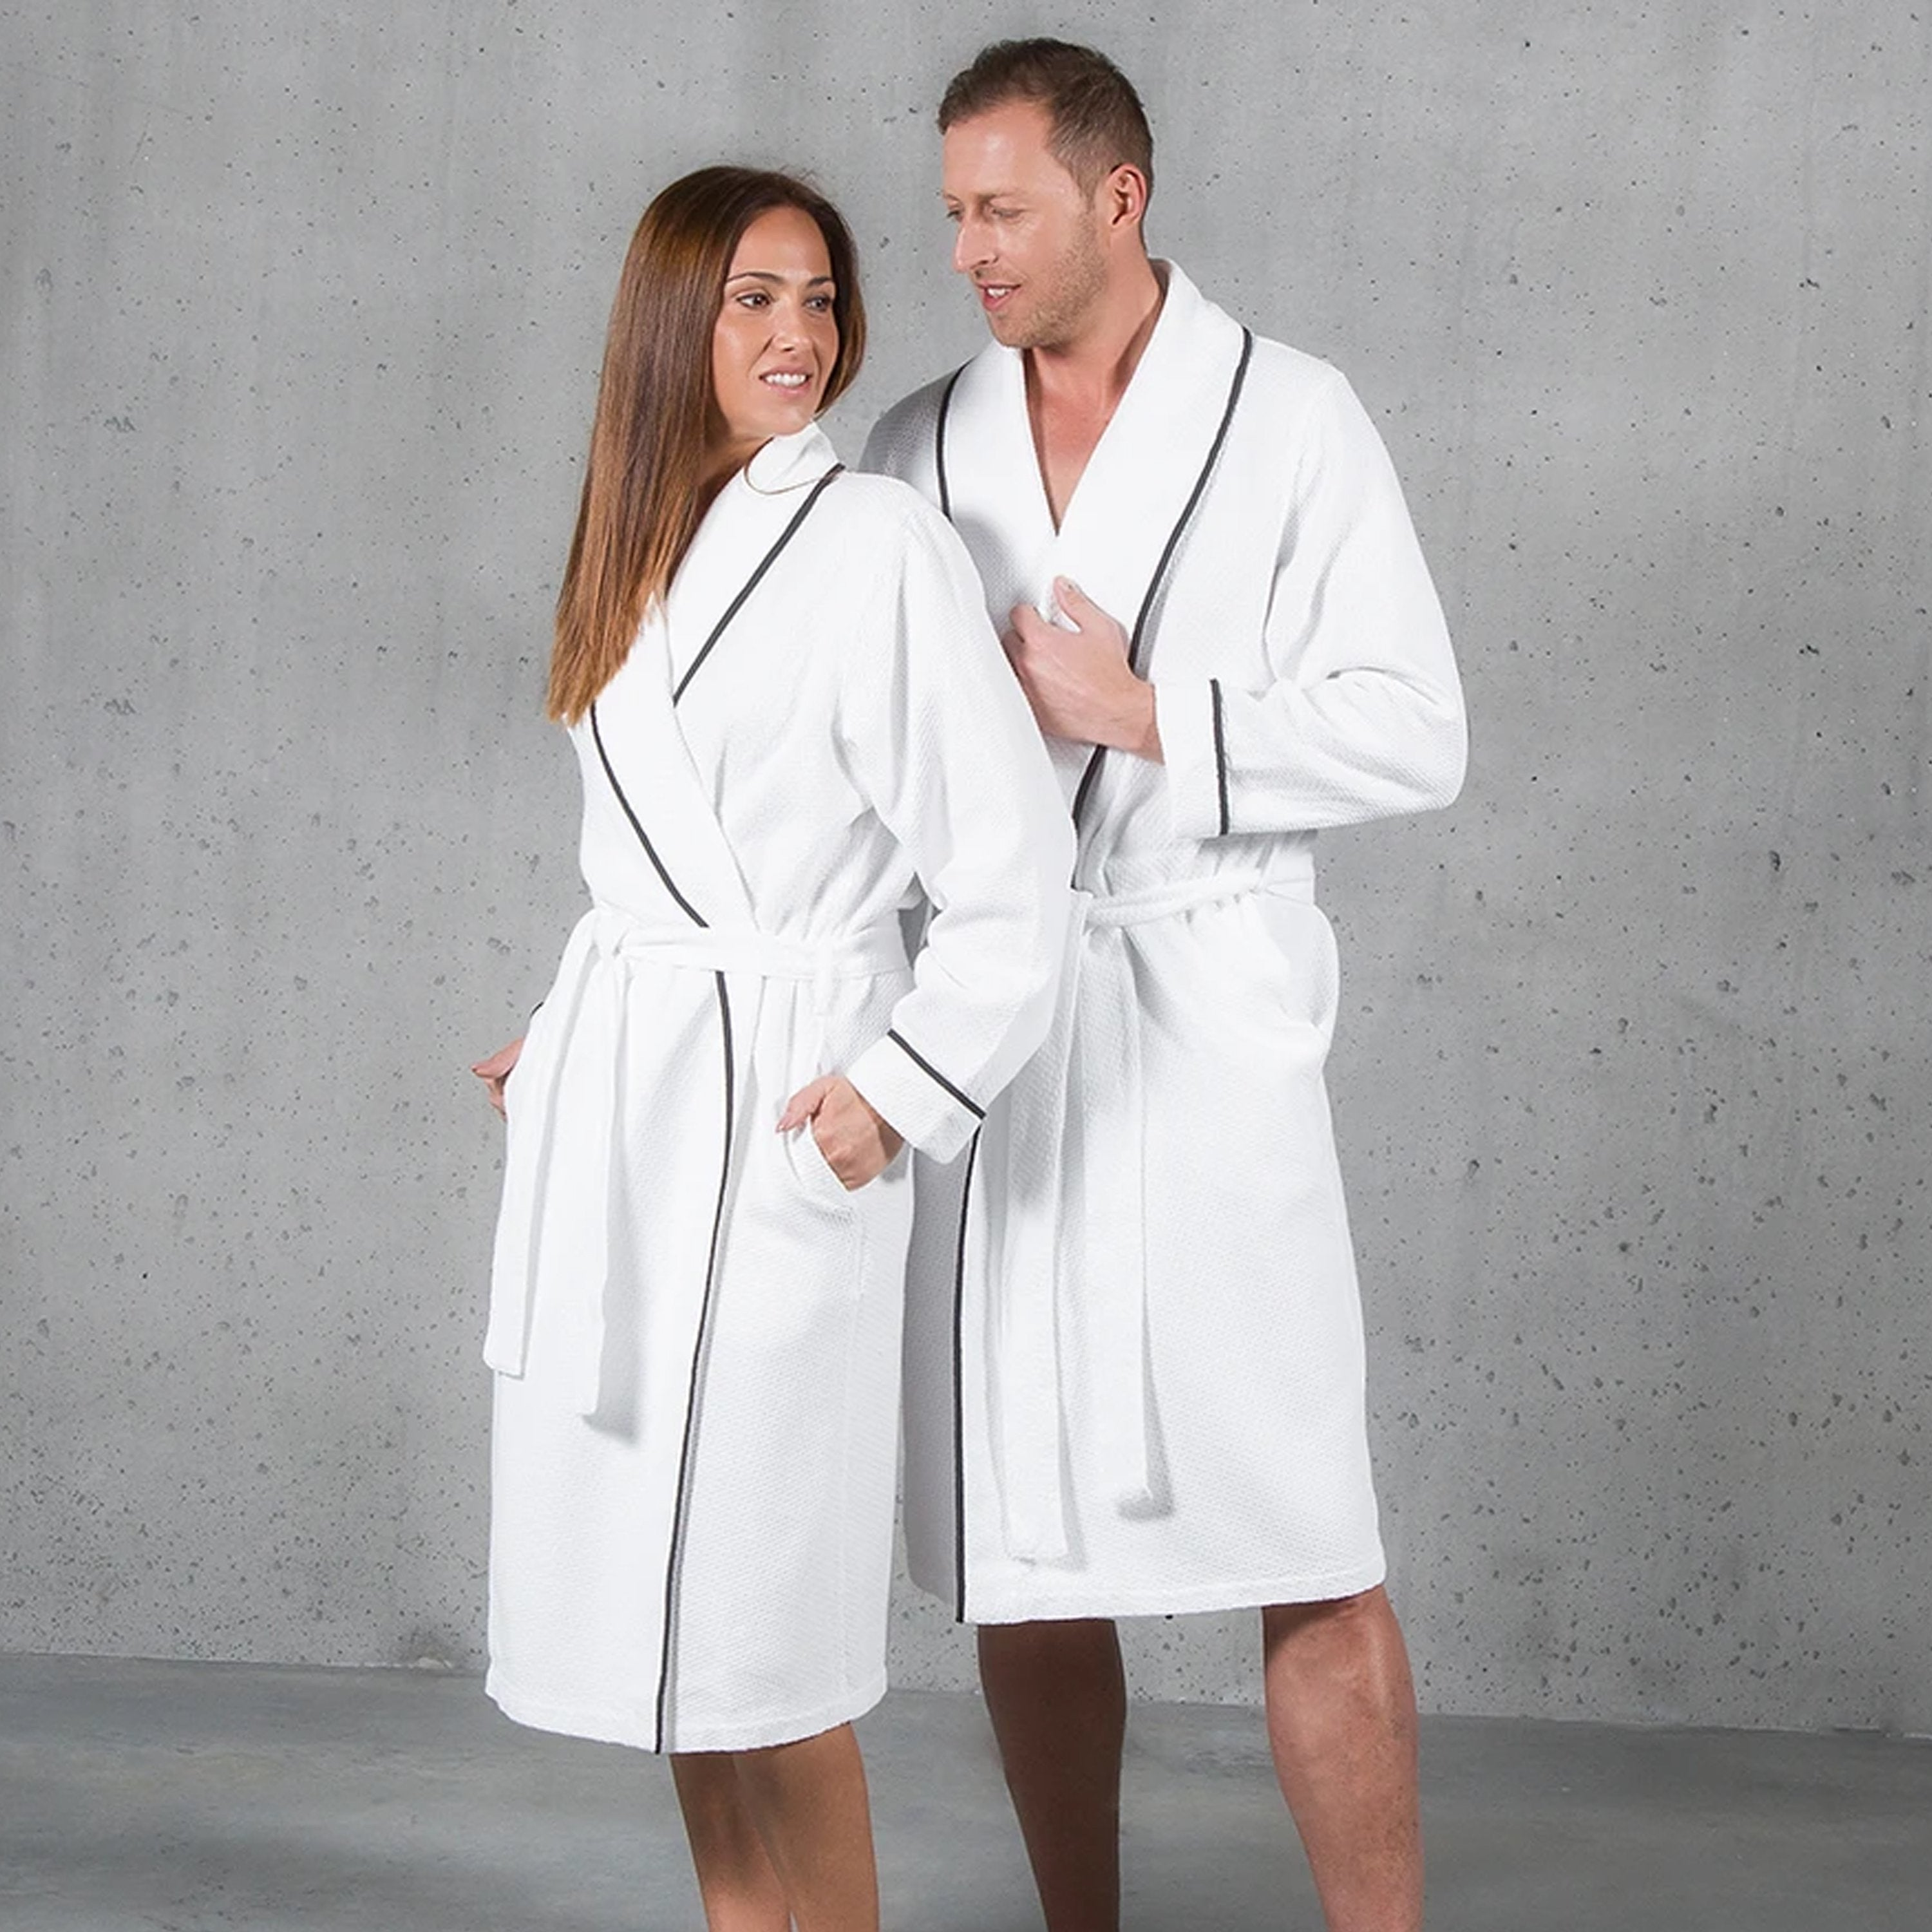 Hierlooms bathroom Robe sets with a variety of different colour piping